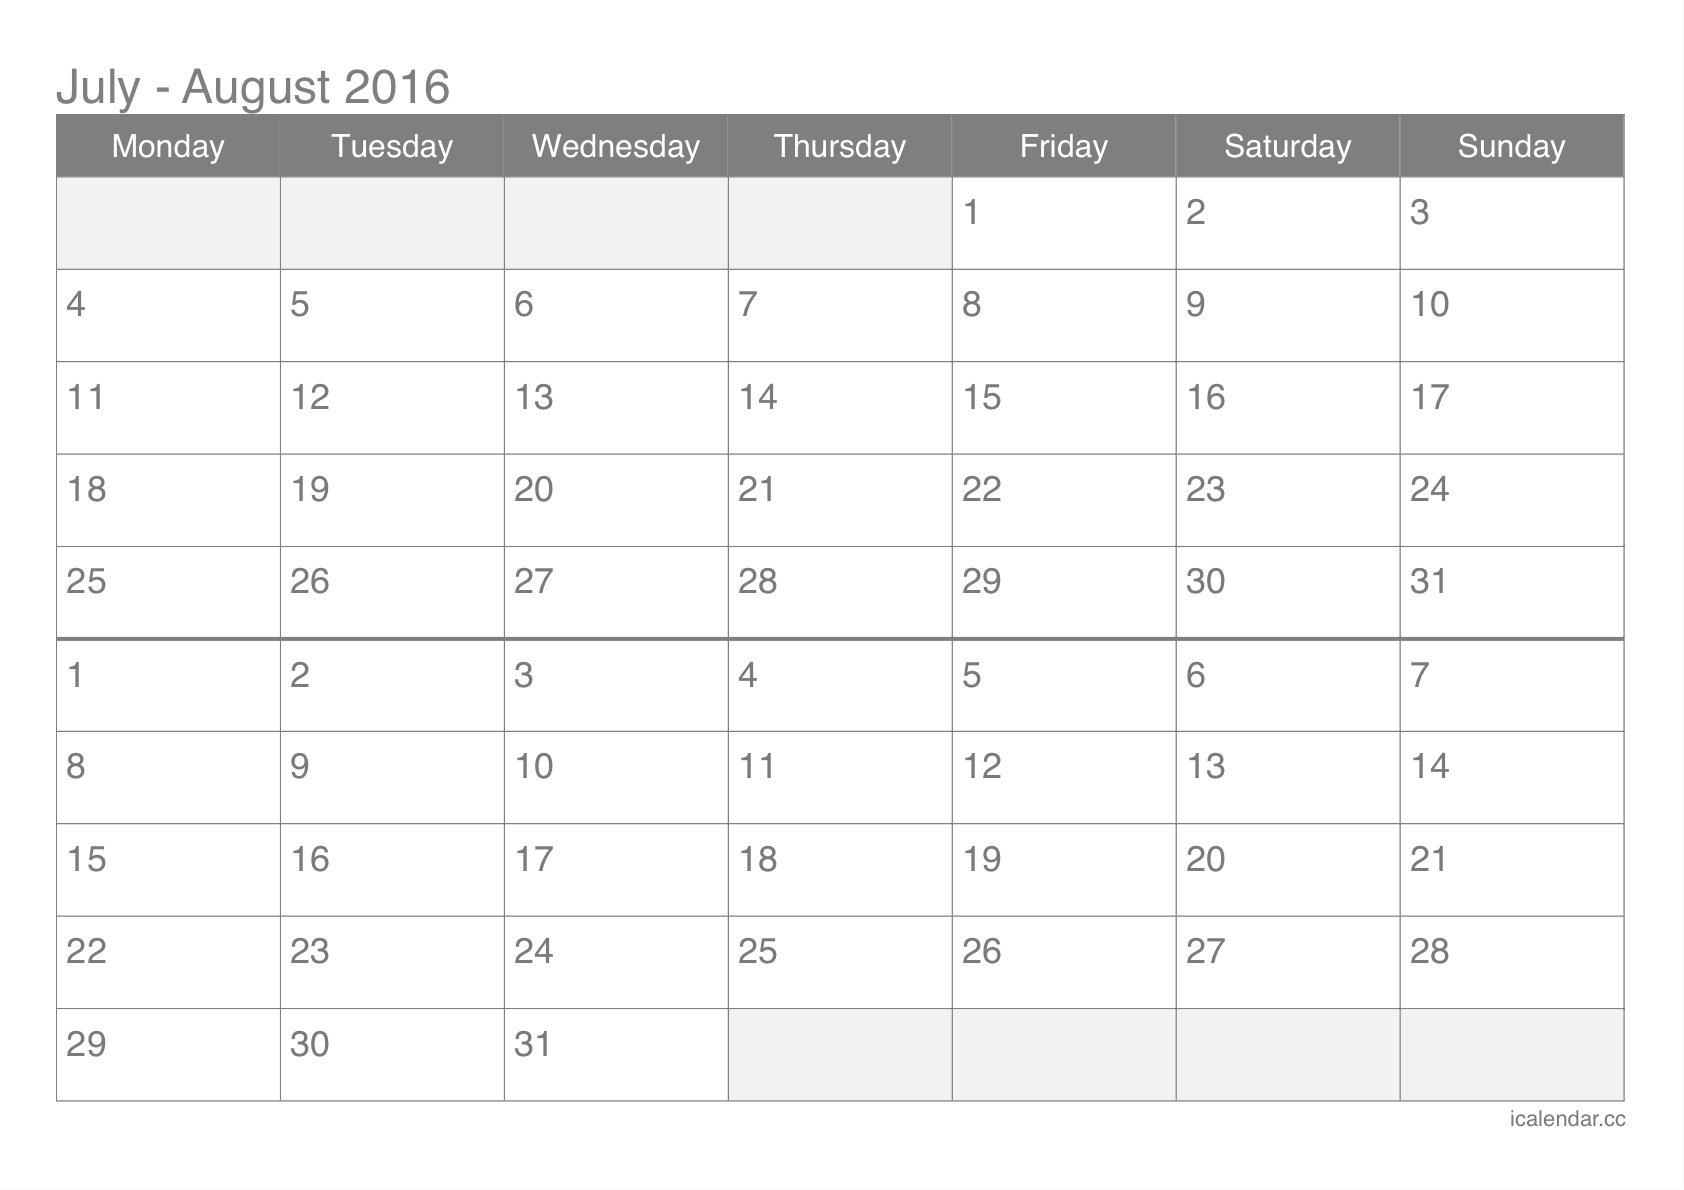 July And August 2016 Printable Calendar  Icalendars pertaining to July August 2016 Calendar